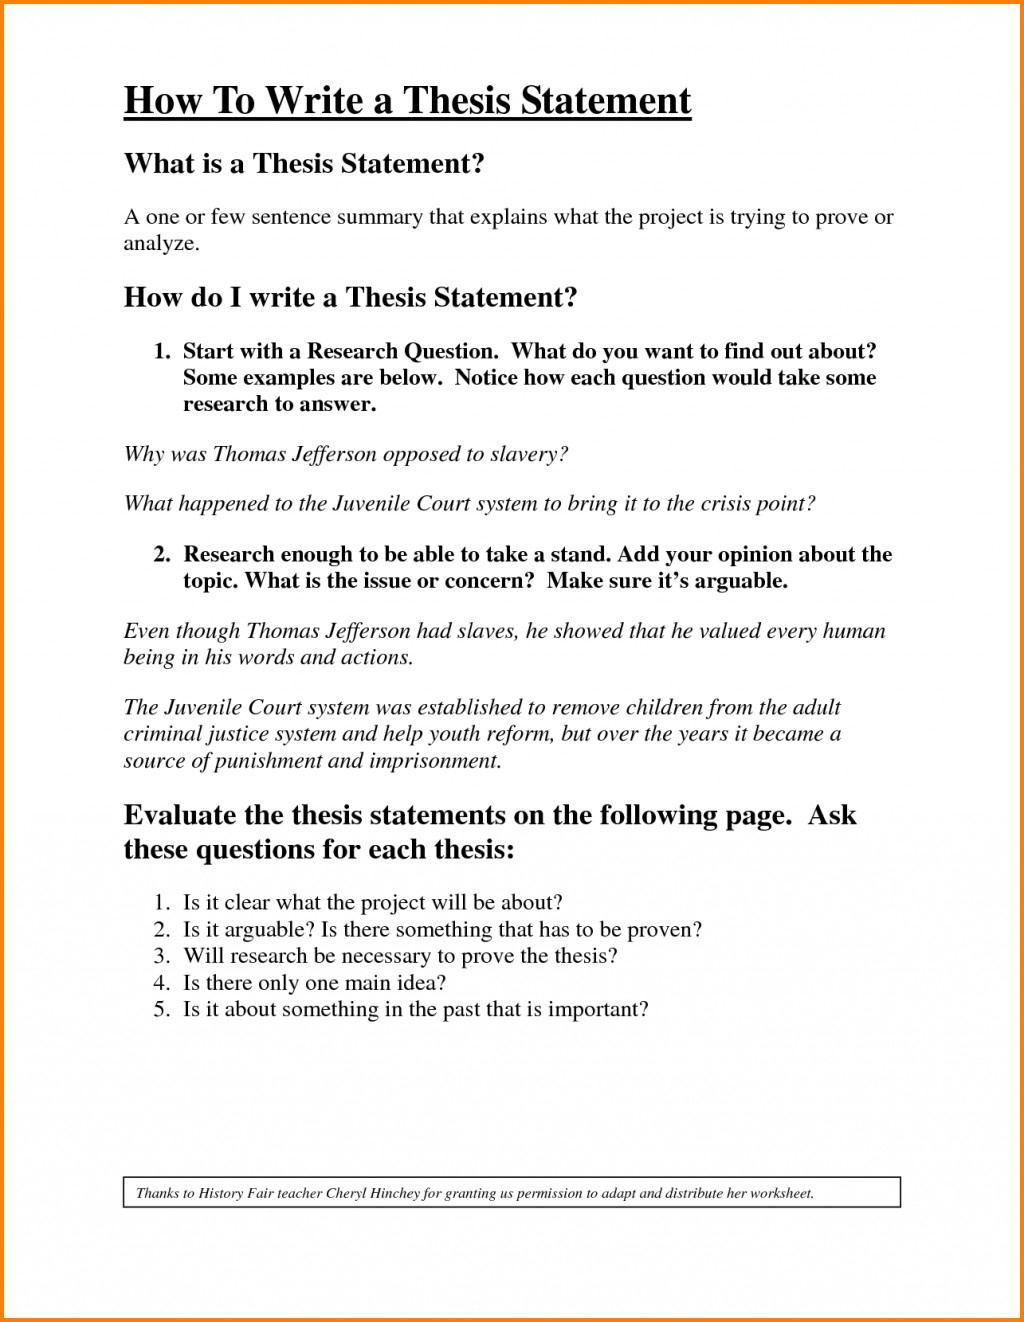 006 How To Make Good Essay Stupendous A Thesis Statement Proper Title Page Large